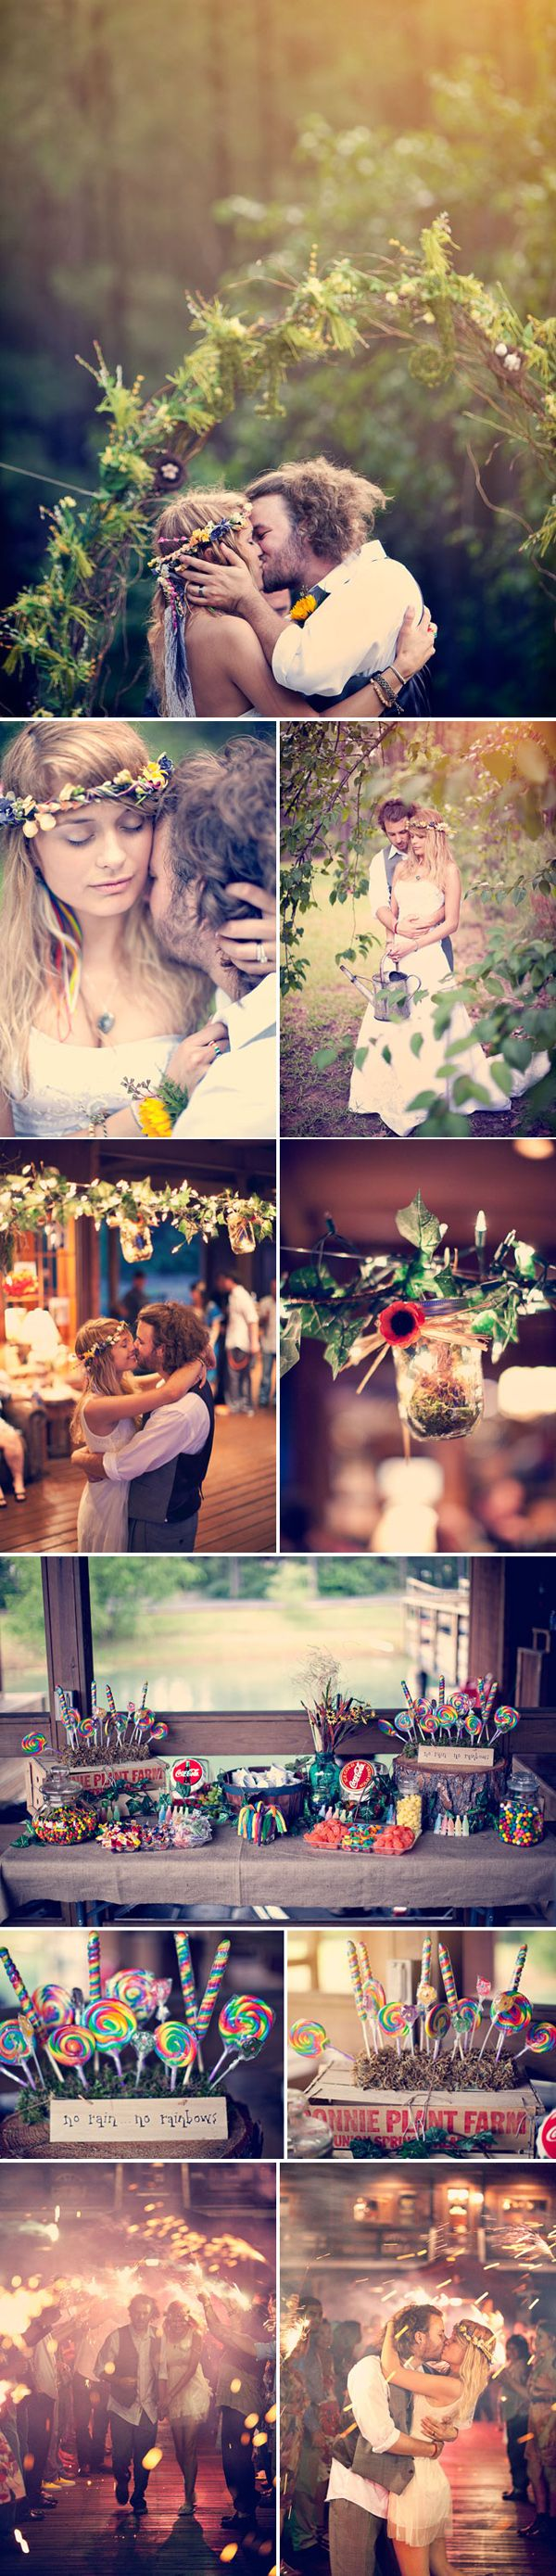 Okay, I never look at wedding stuff, but this is so adorable! The flowers, the archway, the candy!